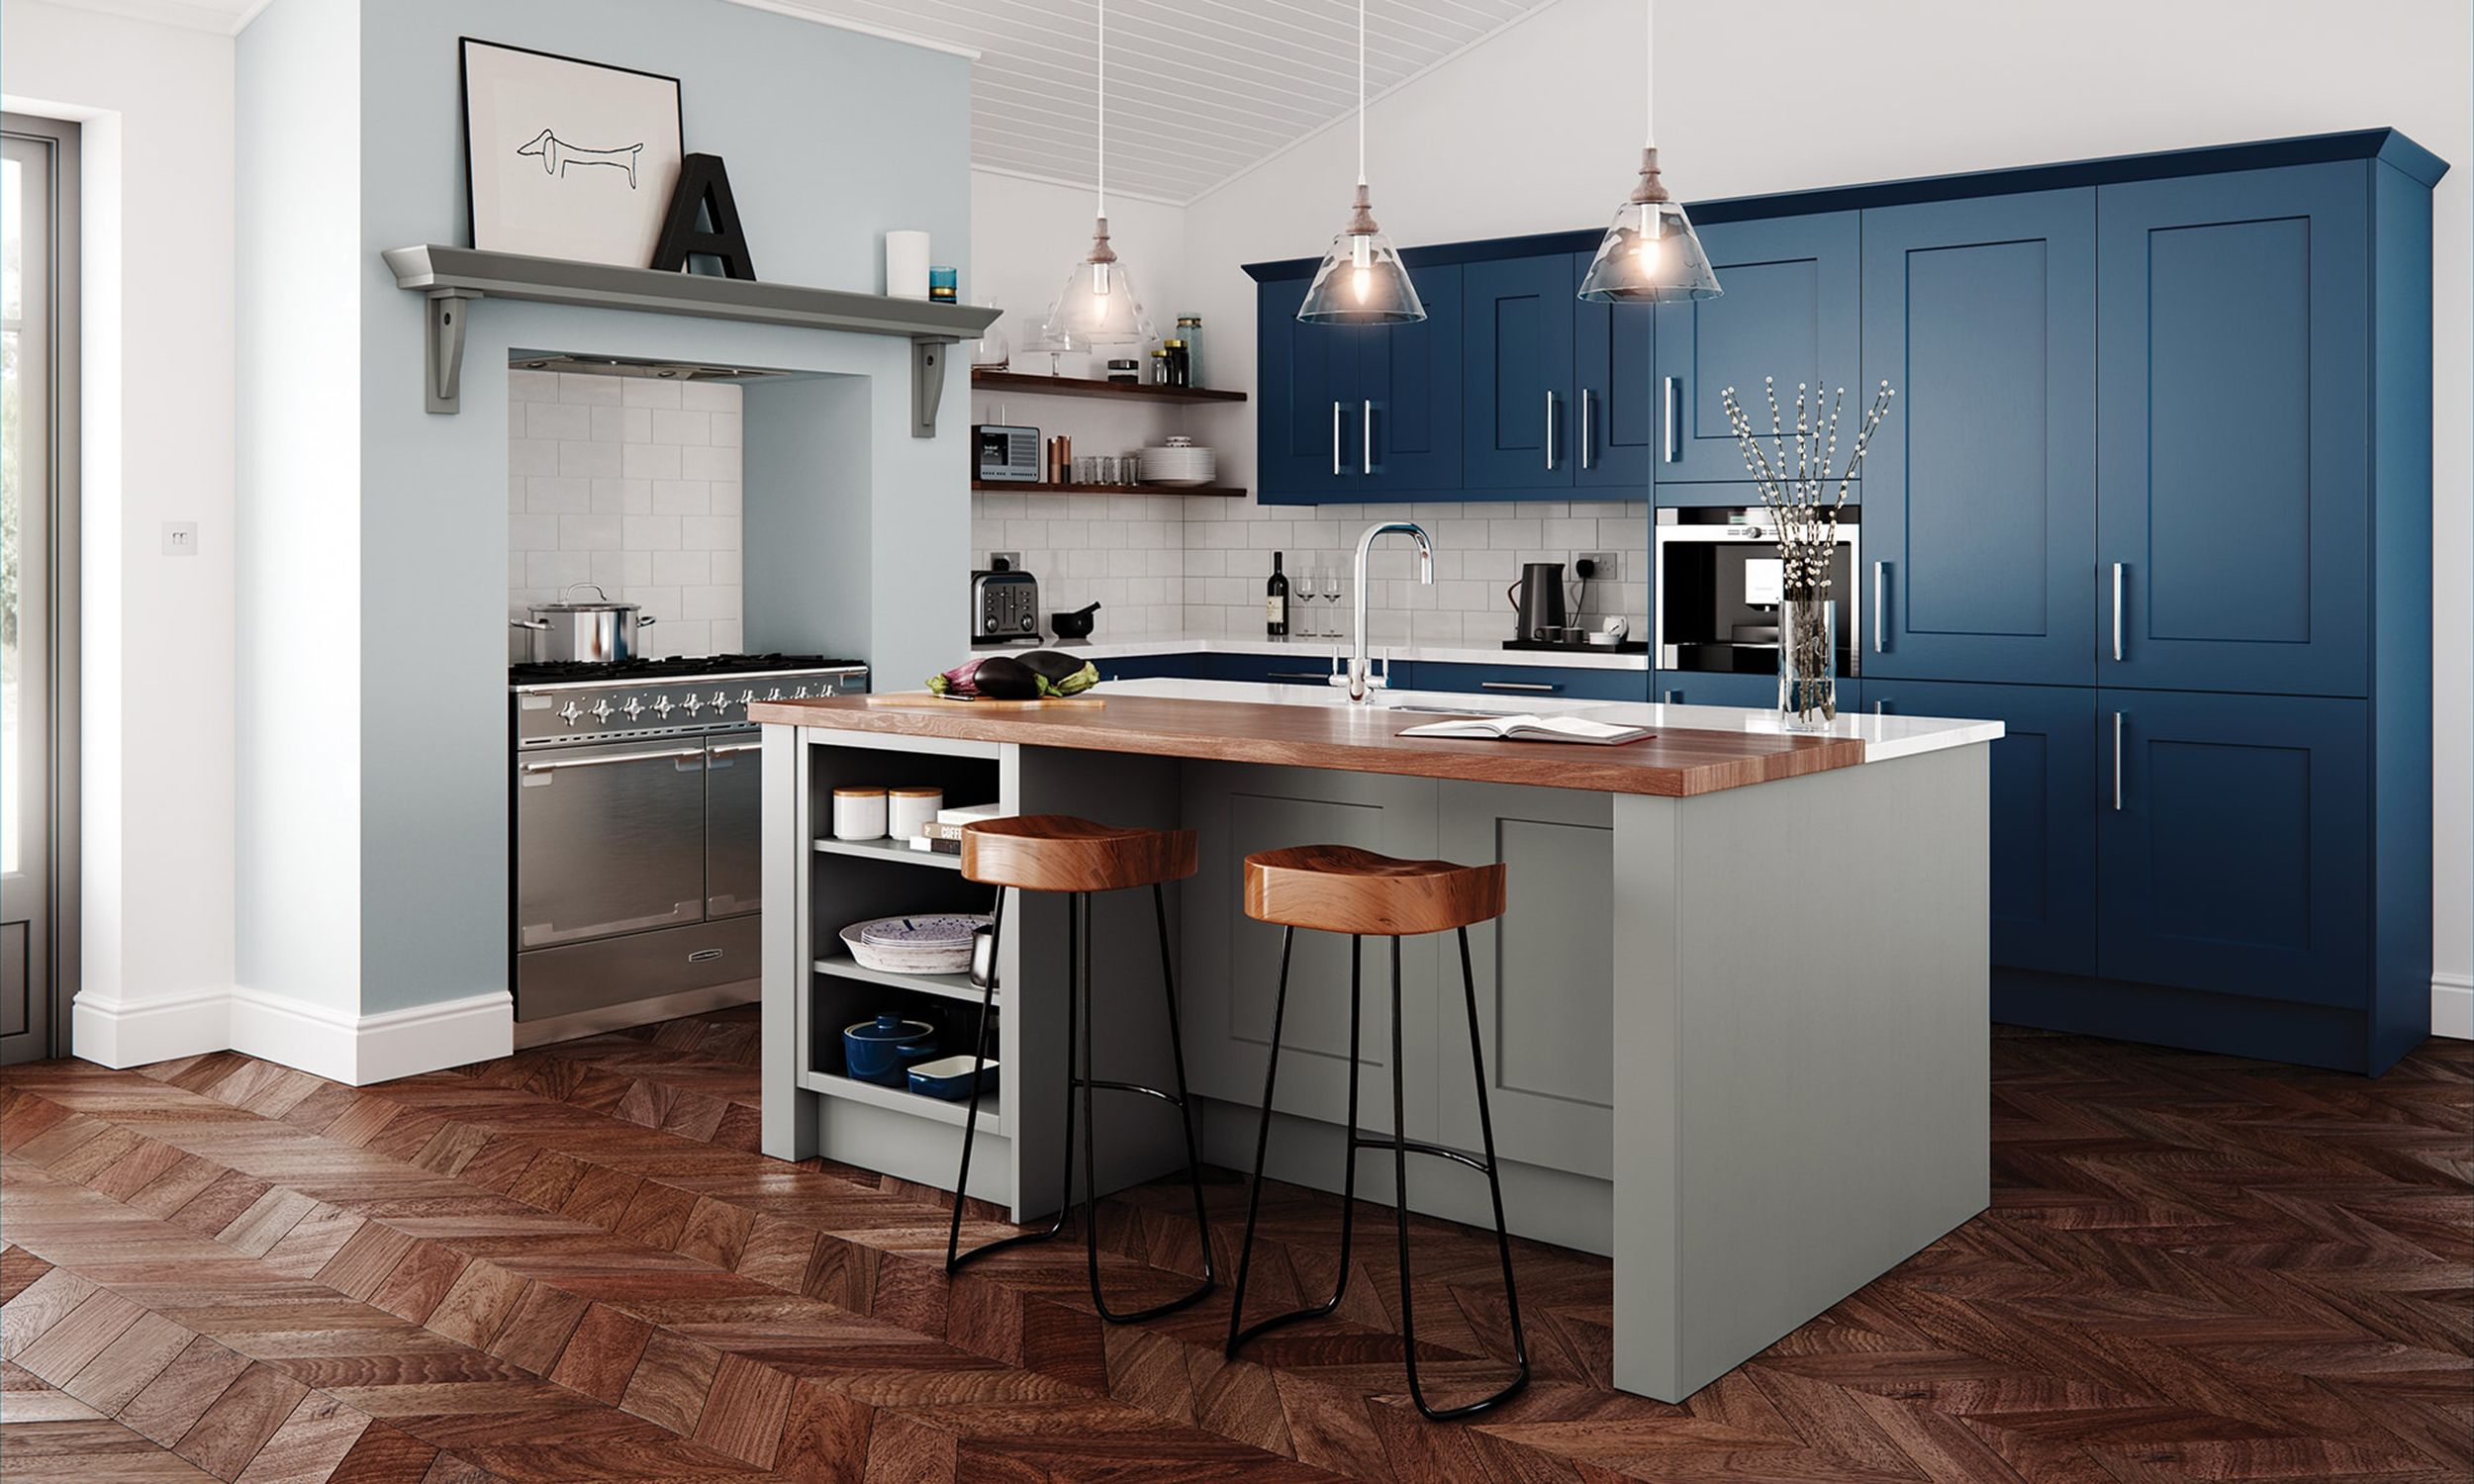 Clonmel Fully Fitted Kitchen Blue kitchens, Freestanding